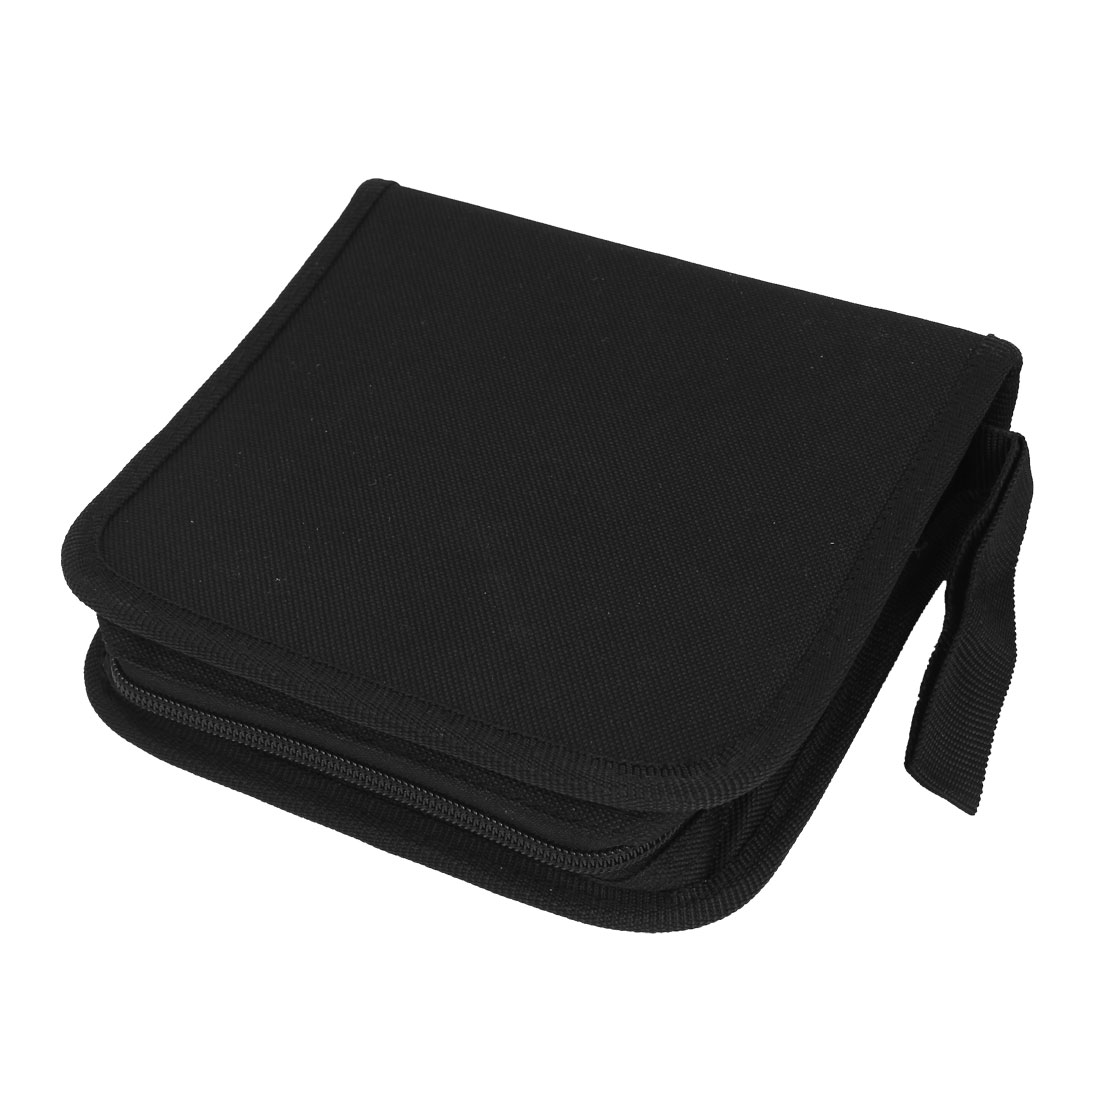 Black Plastic Cover Hand Carrying Strap Zip Closure Squared 40pcs DVD CD Holder Bag